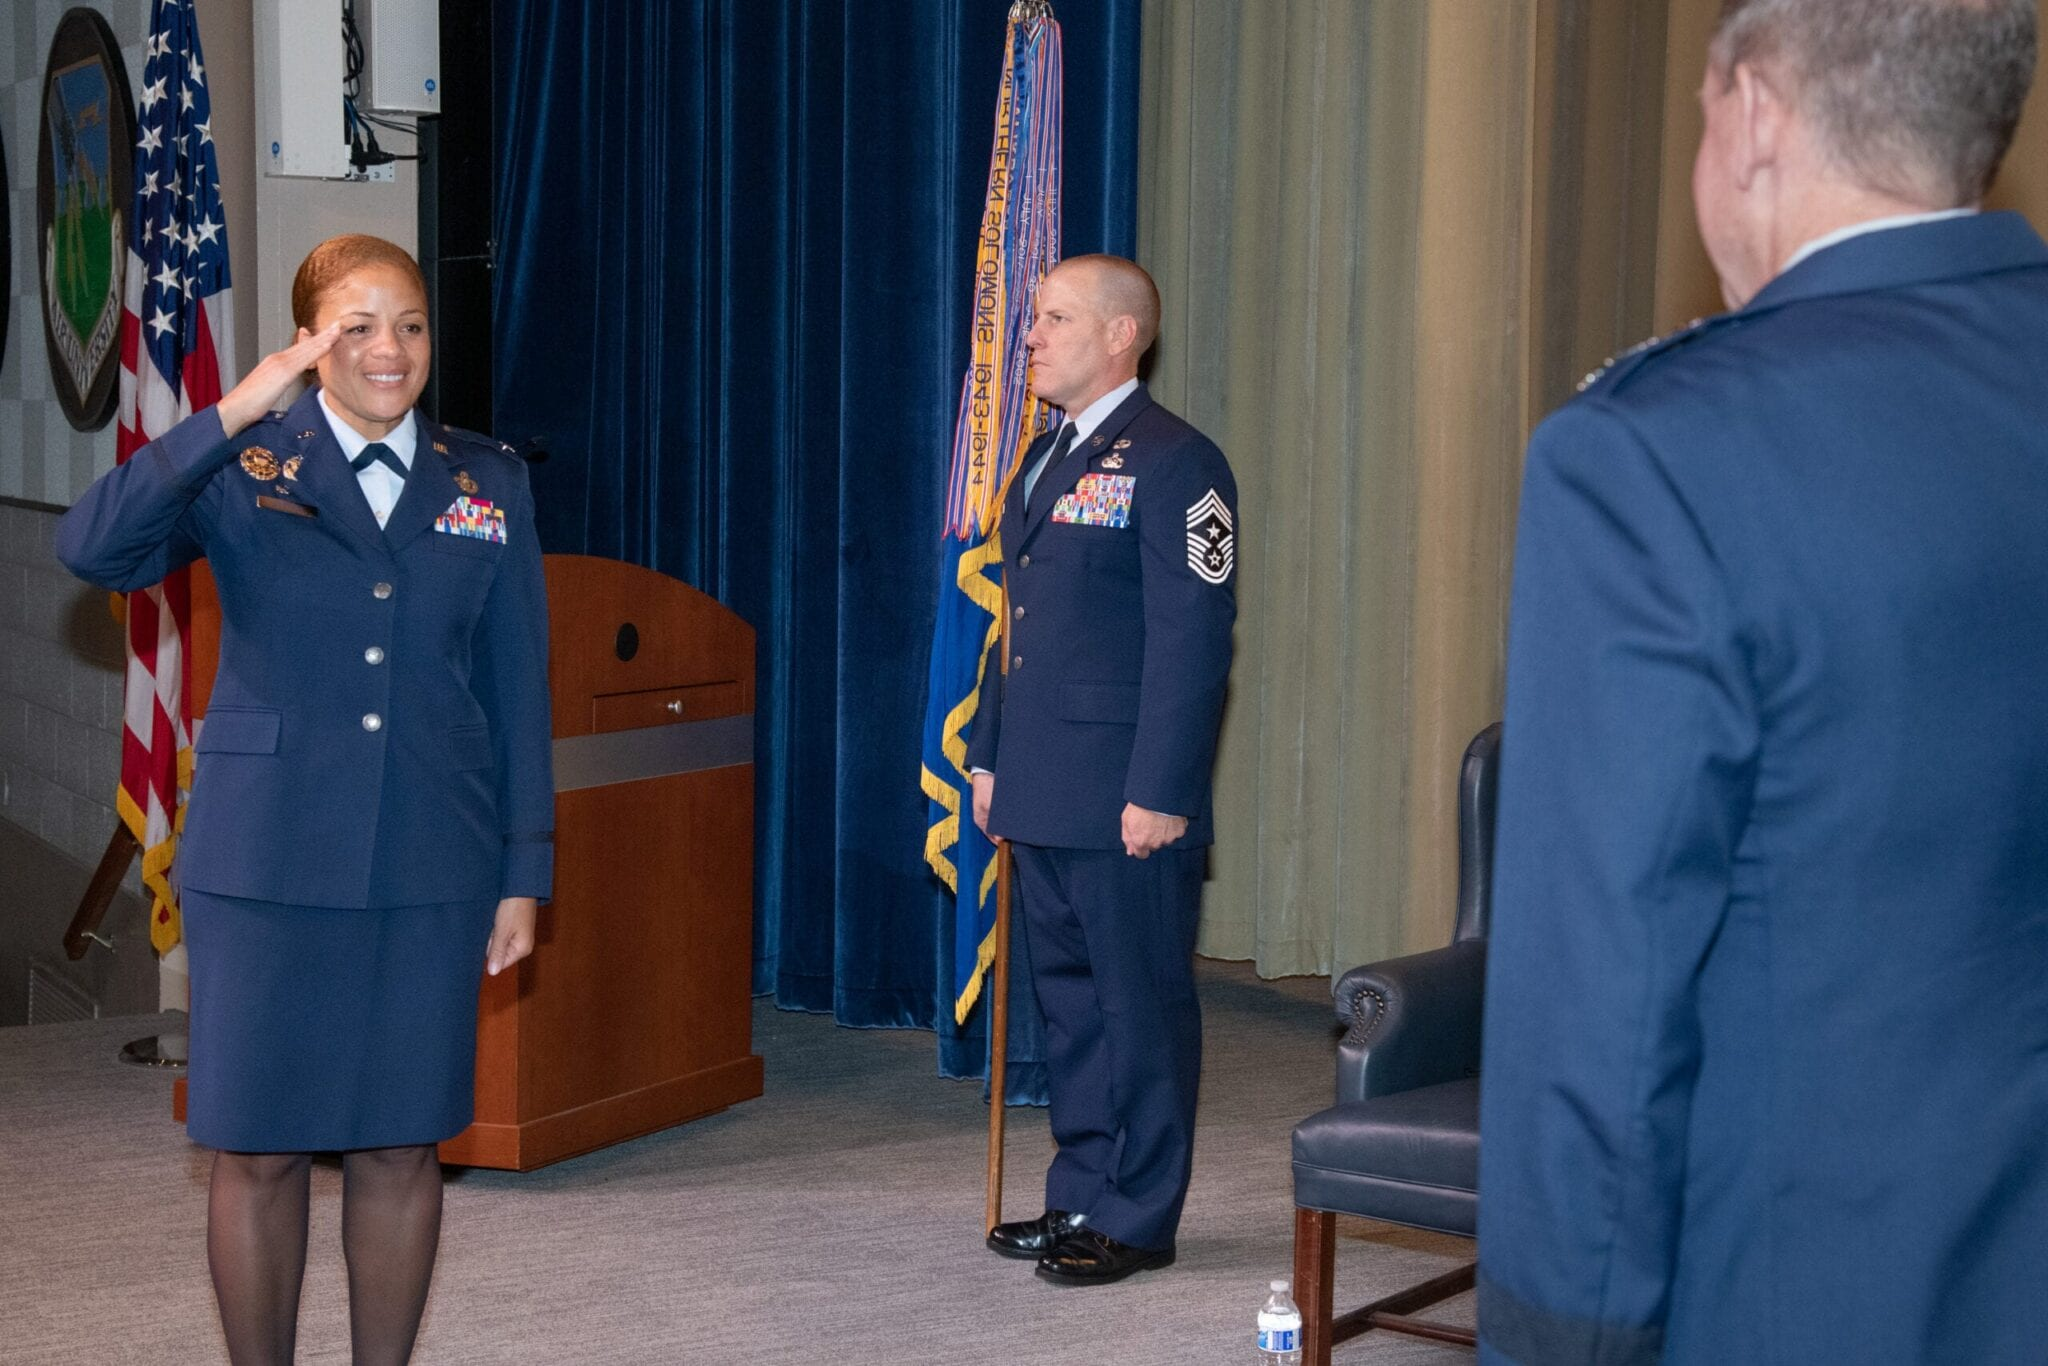 Lt General James B. Hecker presides over 42d Air Base Wing change of command with Colonel Patrick J. Carley relinquishing command to Colonel Eries L. G. Mentzer